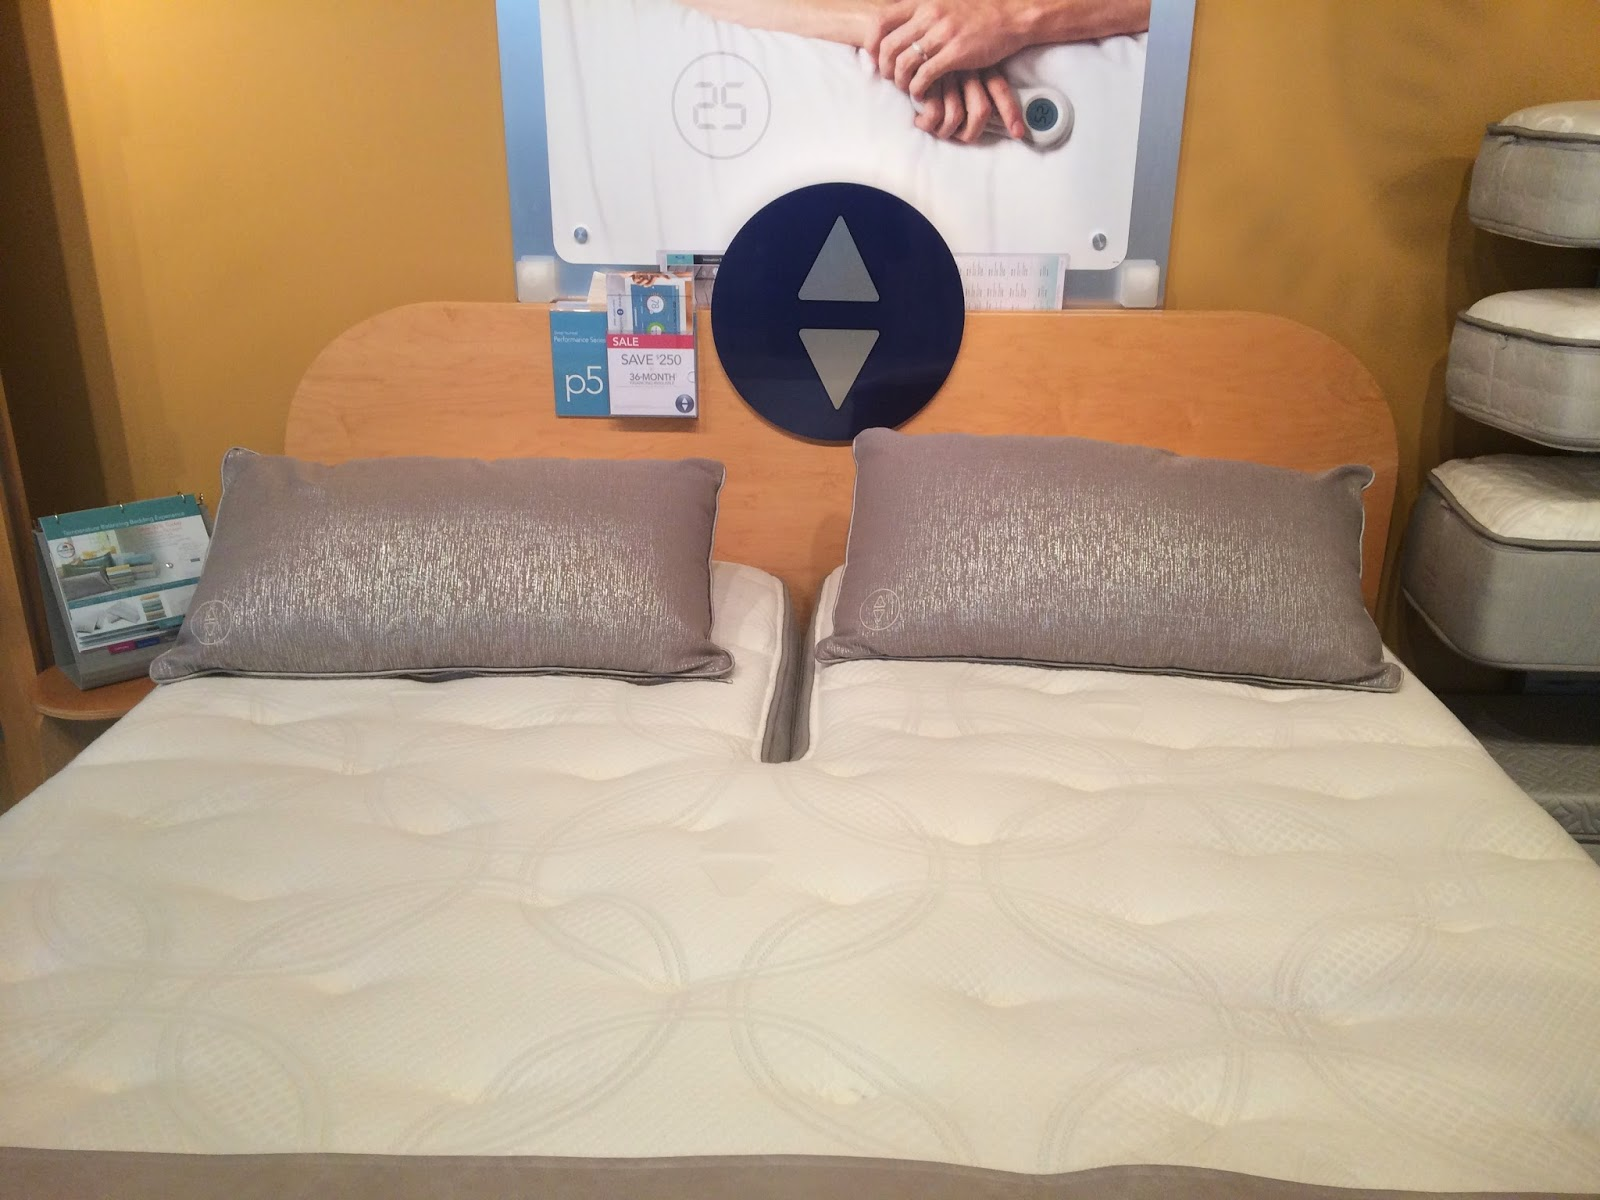 Durhamonthecheap smiley360 review sleep number beds and for Sleep number iq bed